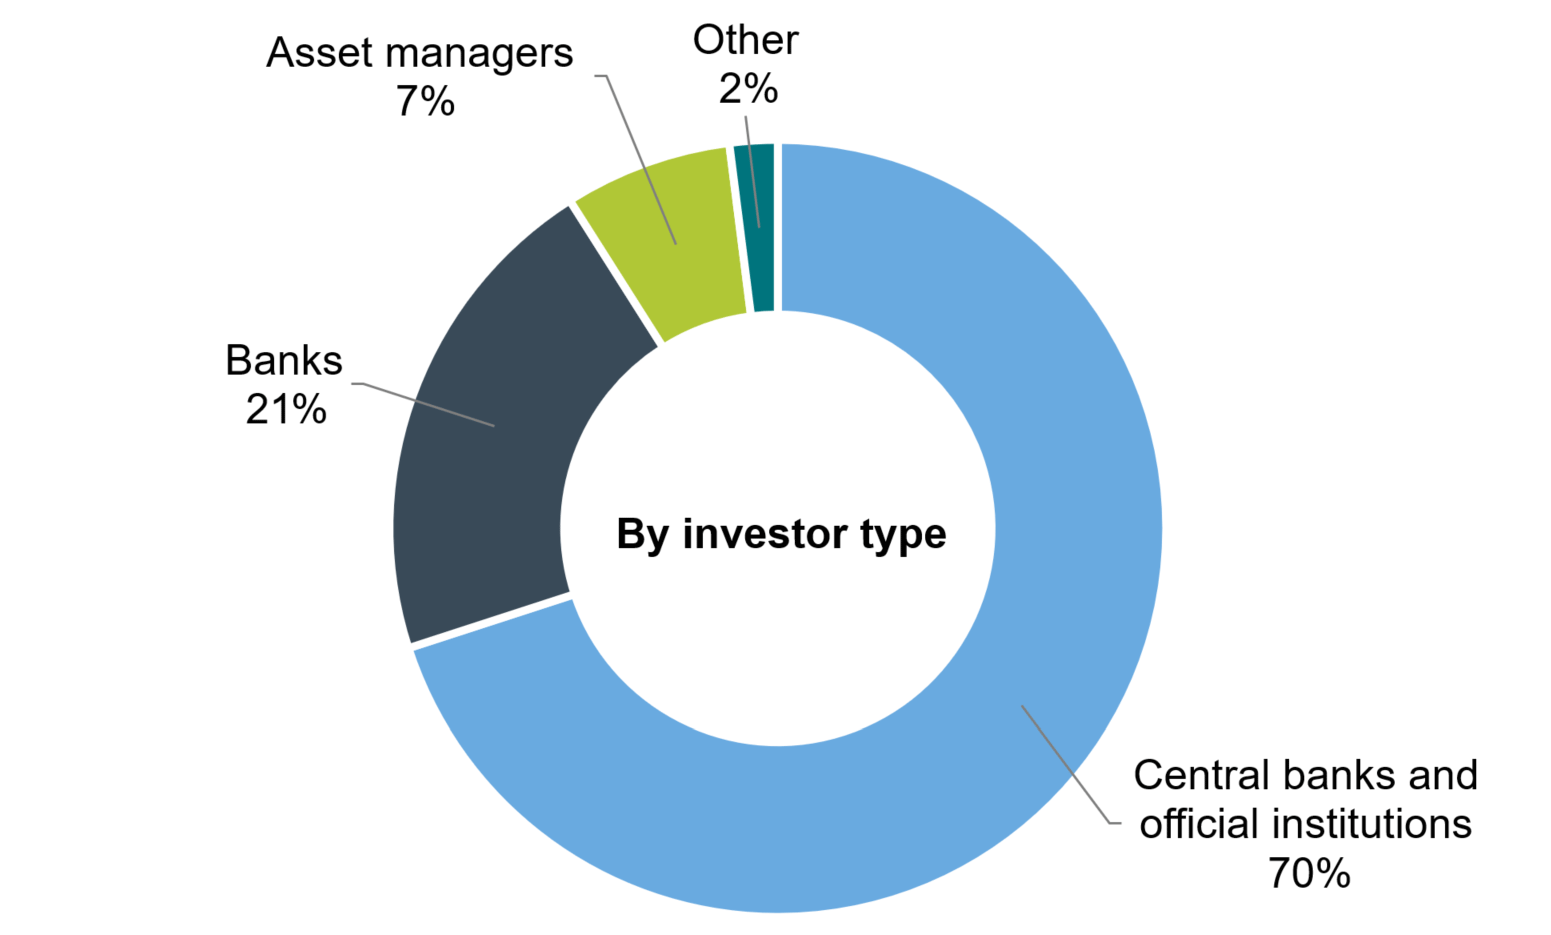 CADEPO 2023 - By investor type